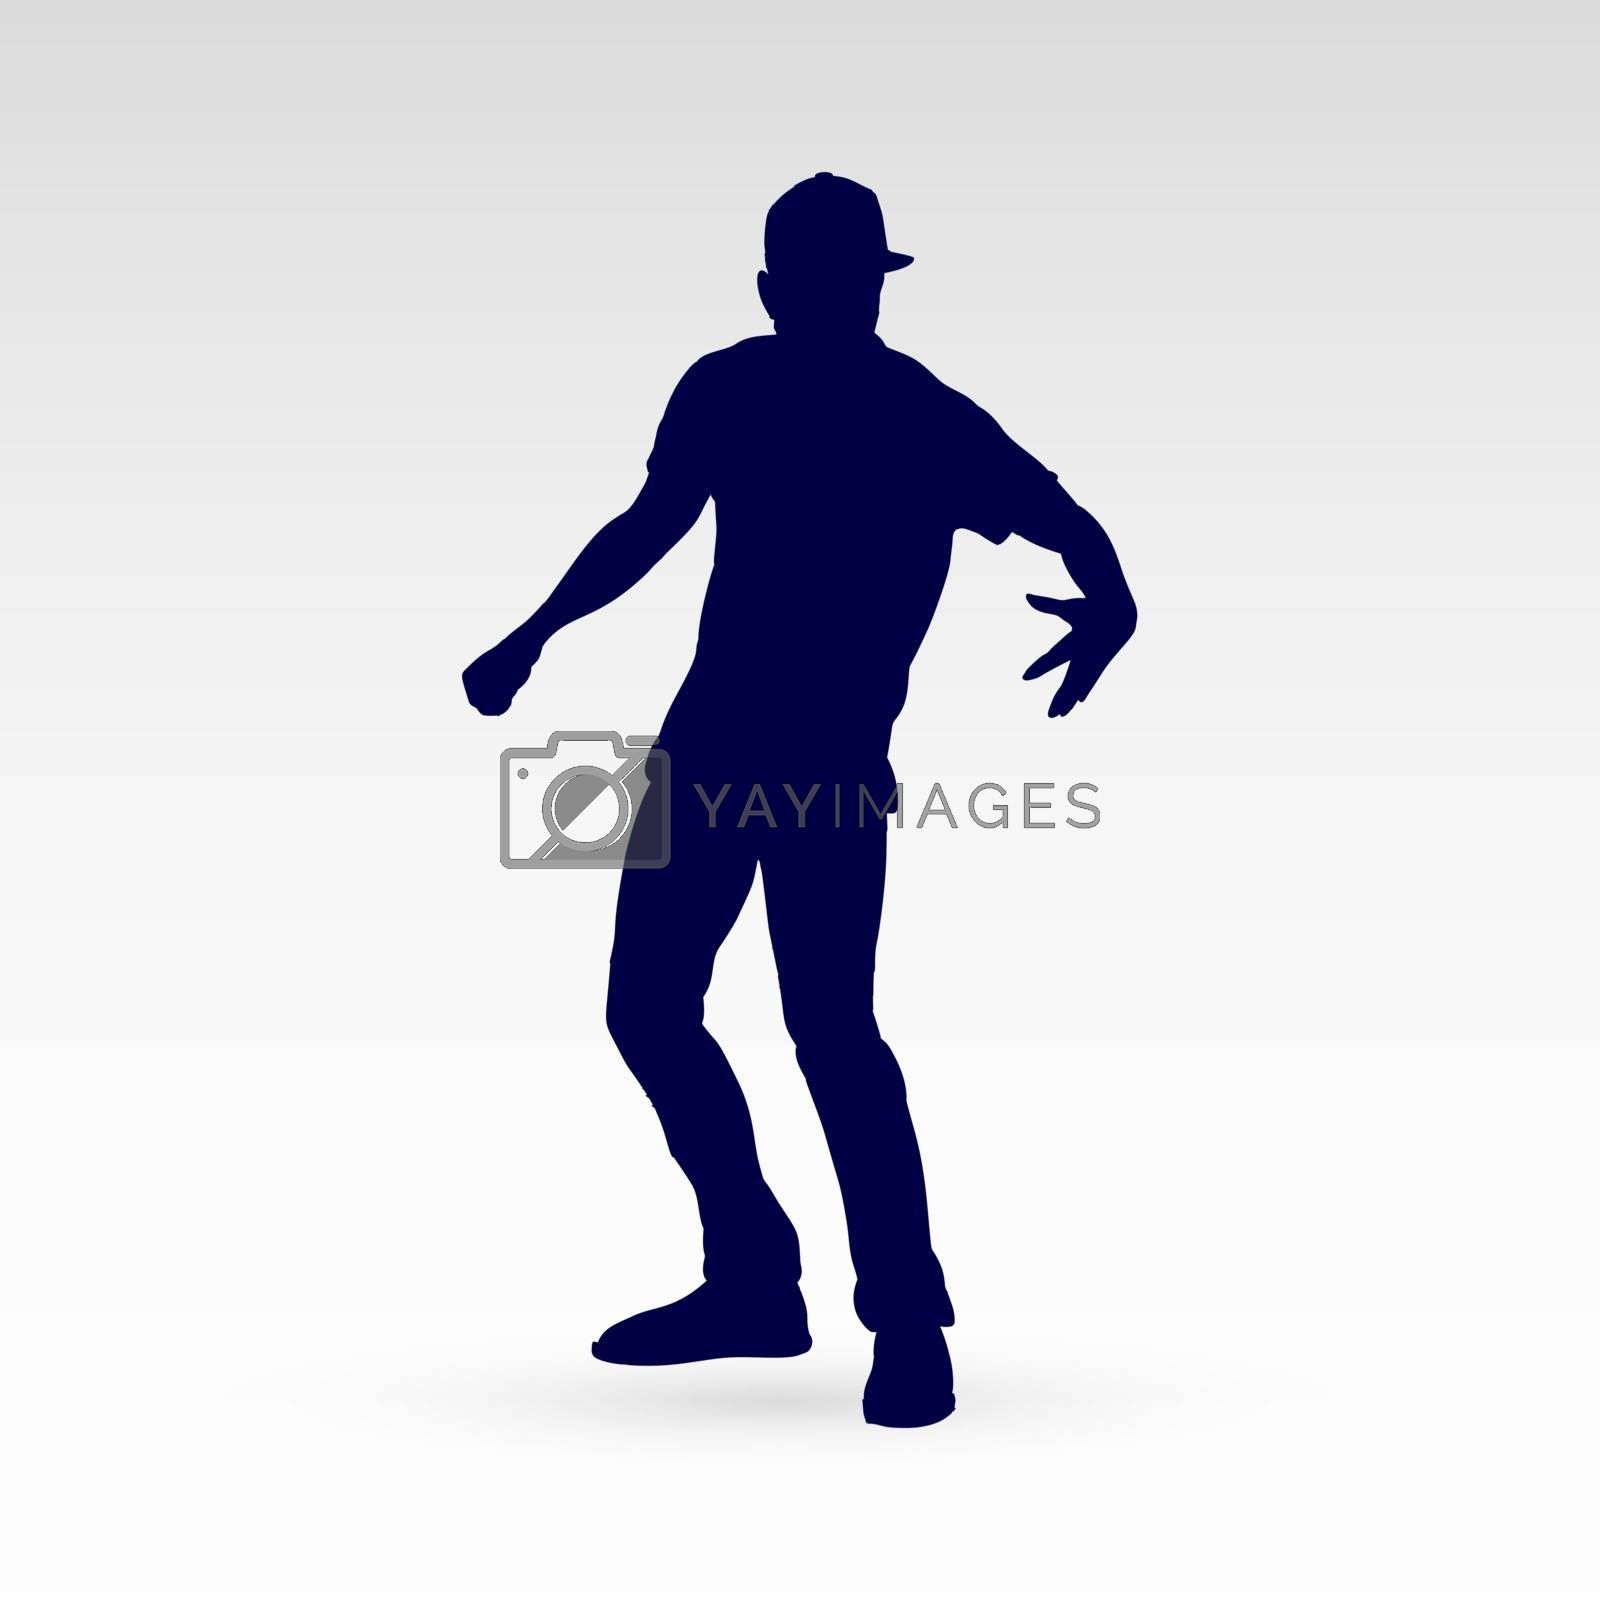 Modern Style Dancer Posing Silhouette of a Man Dancer on a Gray Background